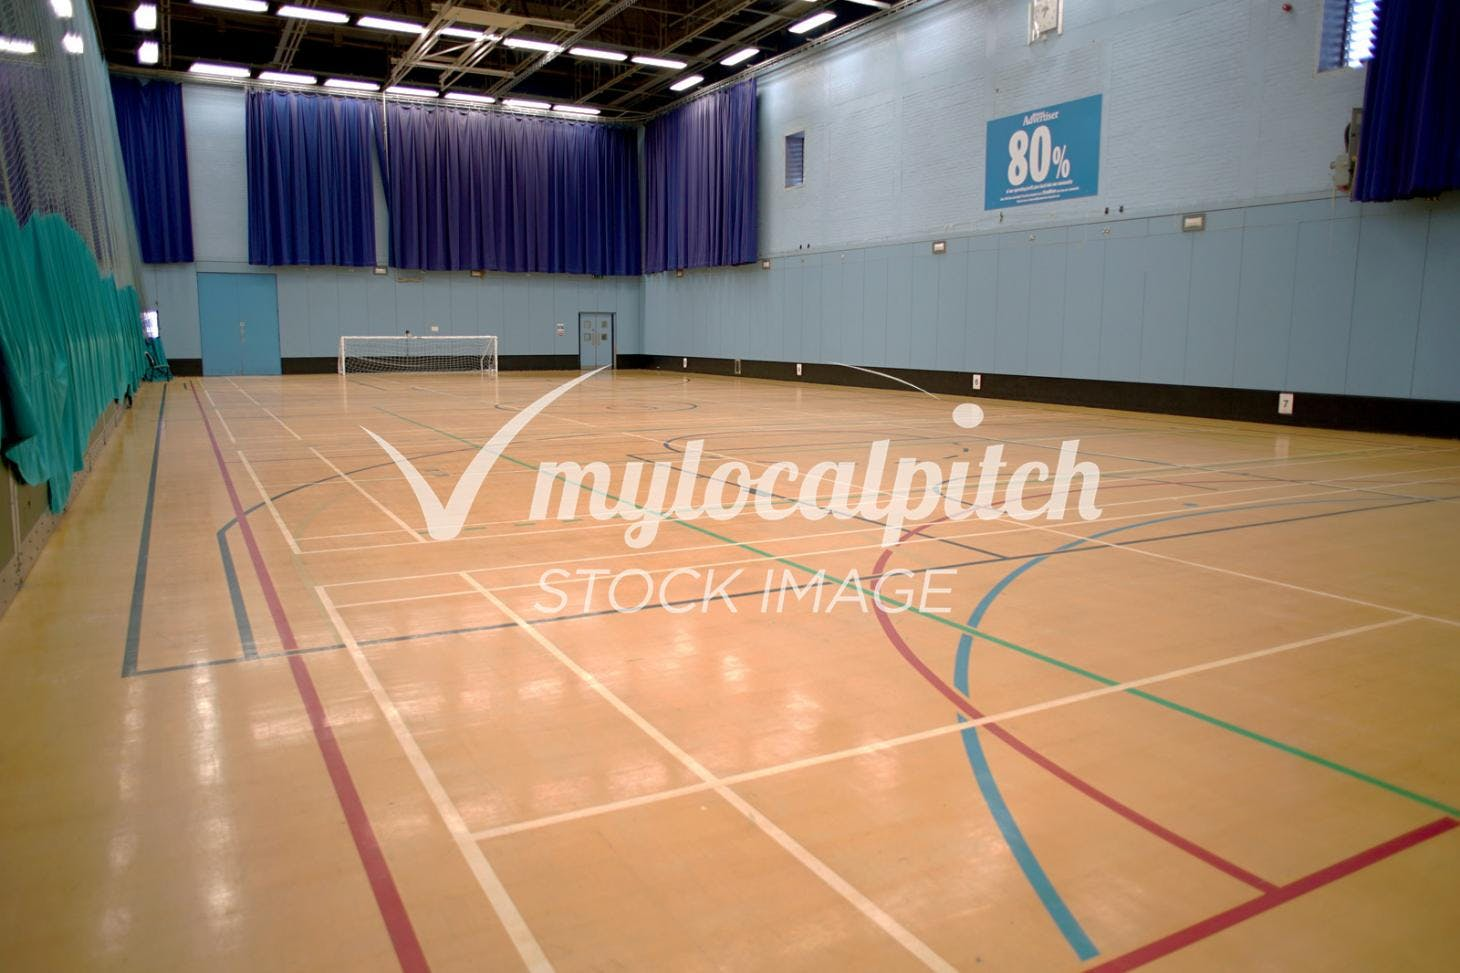 Greenwood Park Community Centre 5 a side | Indoor football pitch